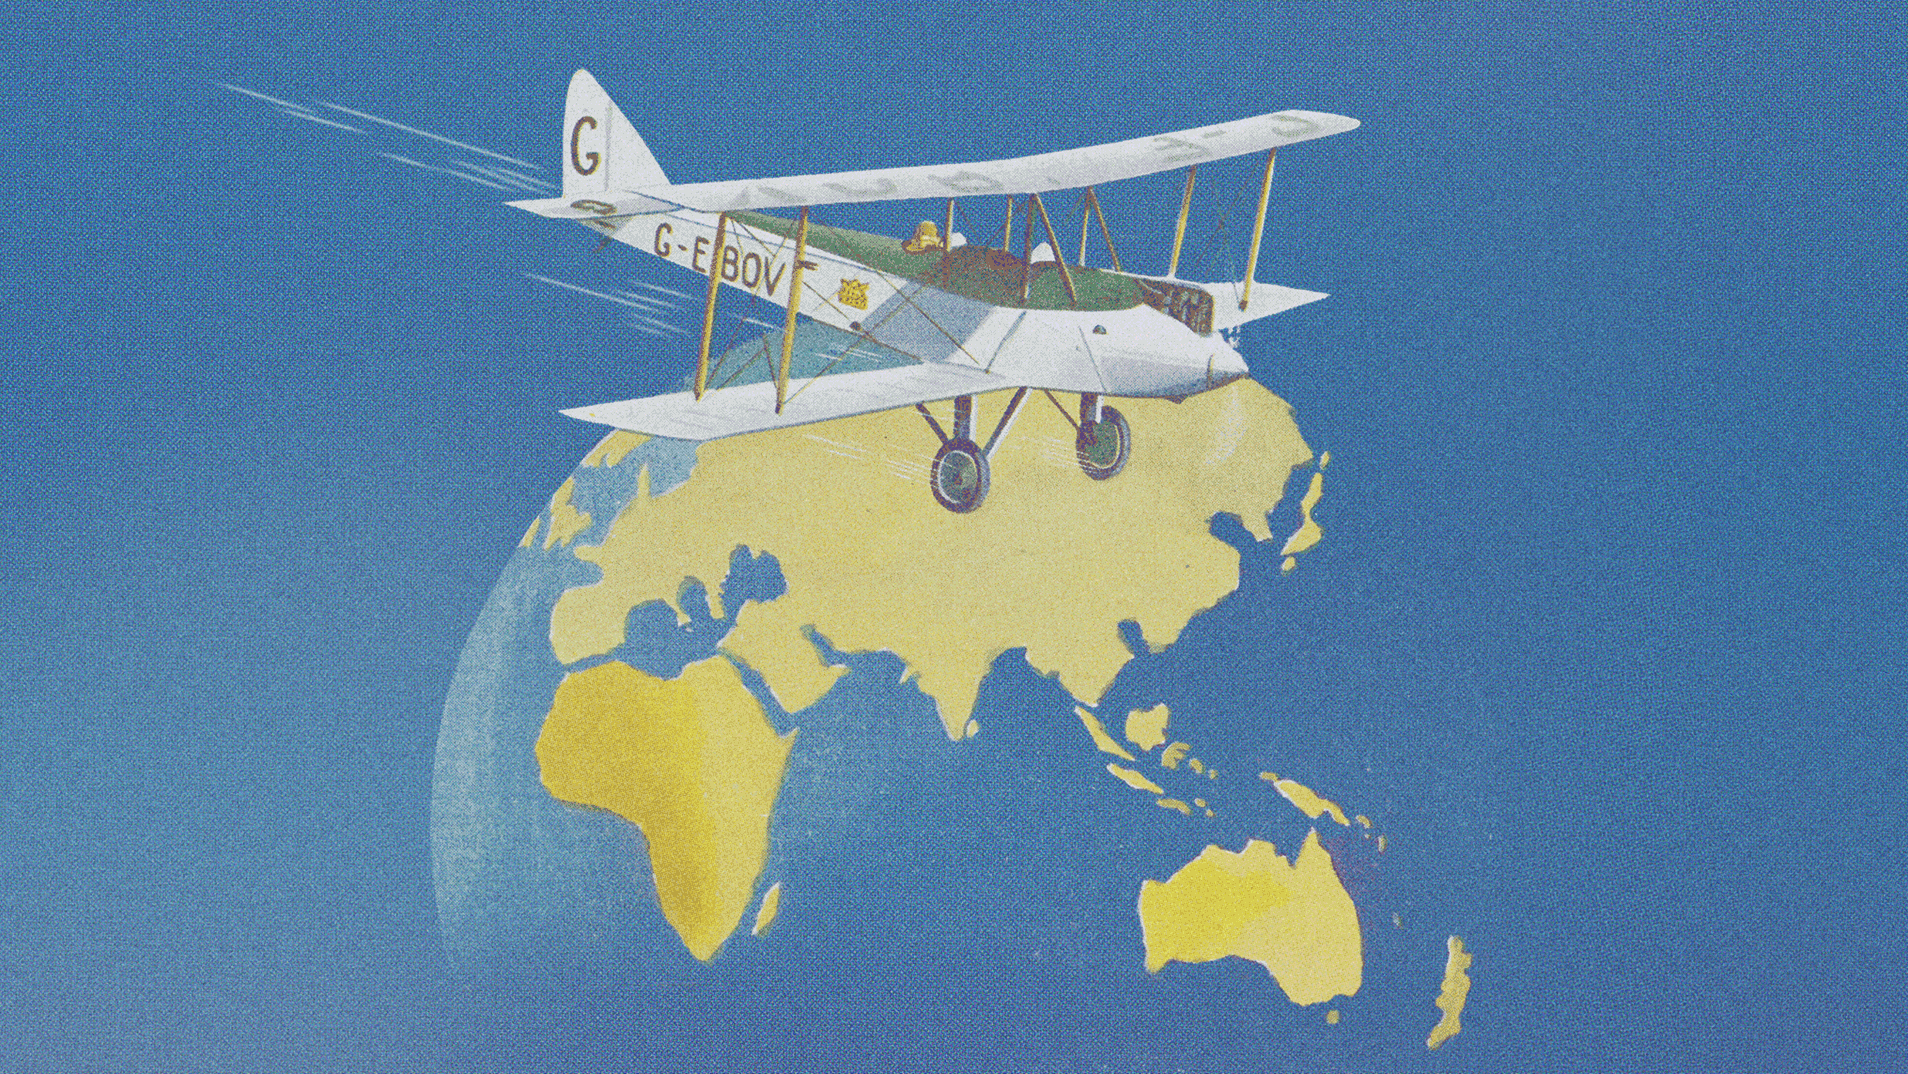 Winging it: images from the early days of air travel